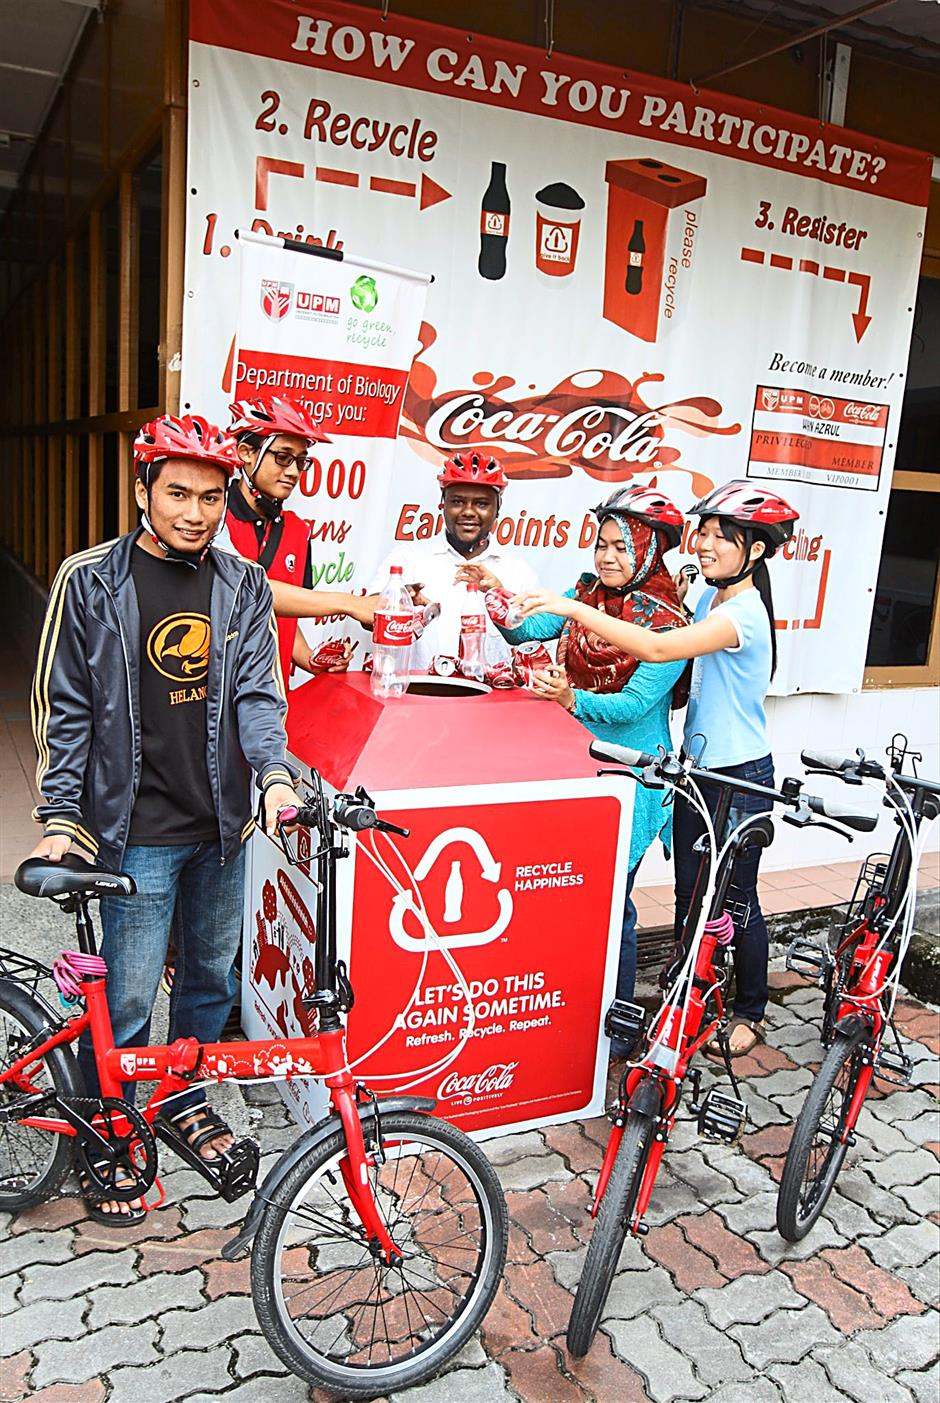 Dual purpose: The Recycle-to-Cycle project provides students and staff members of Universiti Putra Malaysia free use of bicycles whenever they recycle.